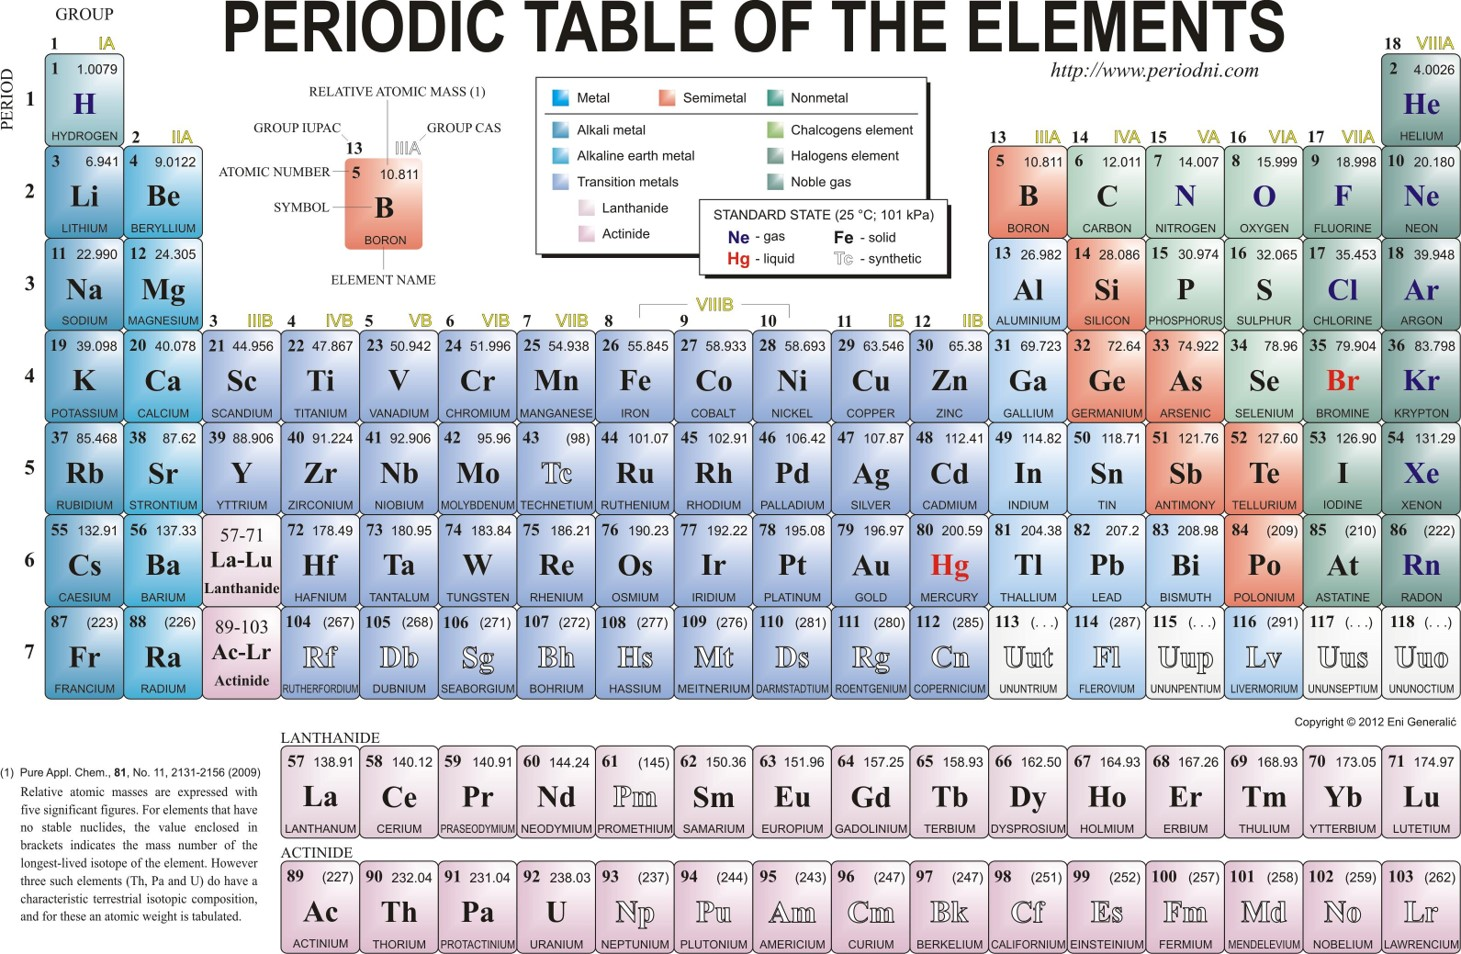 Ch105 chapter 2 atoms elements and the periodic table chemistry some examples of pure elements include a bismuth bi a heavy metal is used as a replacement for lead and in some medicines like pepto bismol gamestrikefo Choice Image